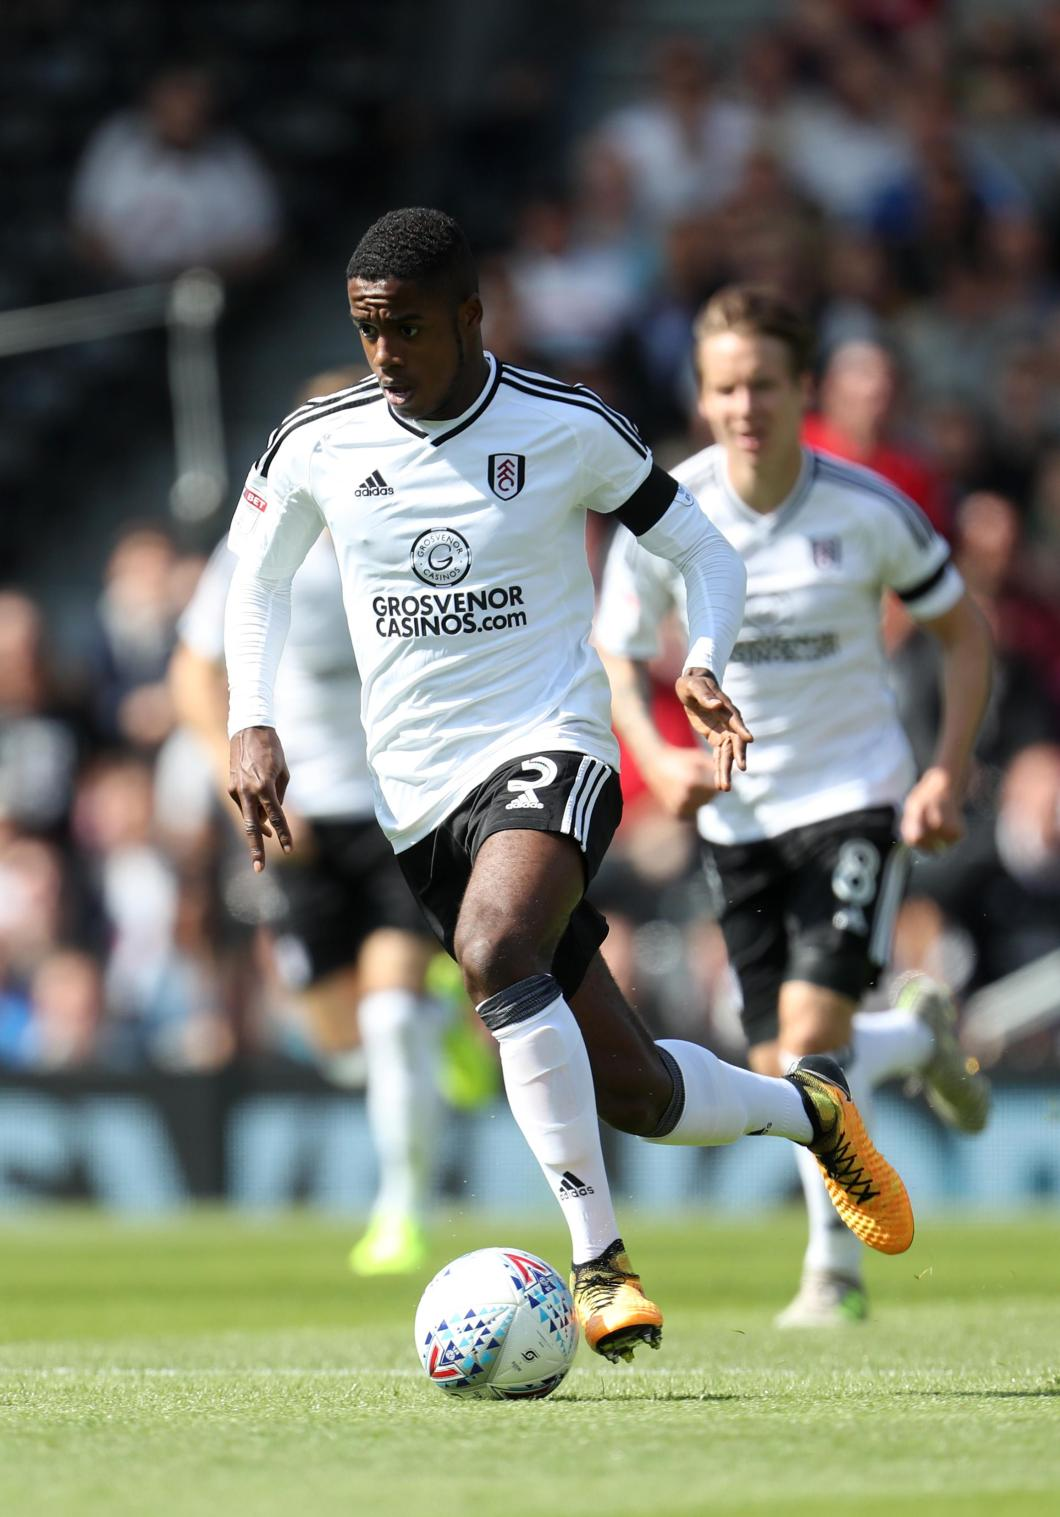 Manchester United are also said to be looking at Fulham wonderkid Ryan Sessegnon